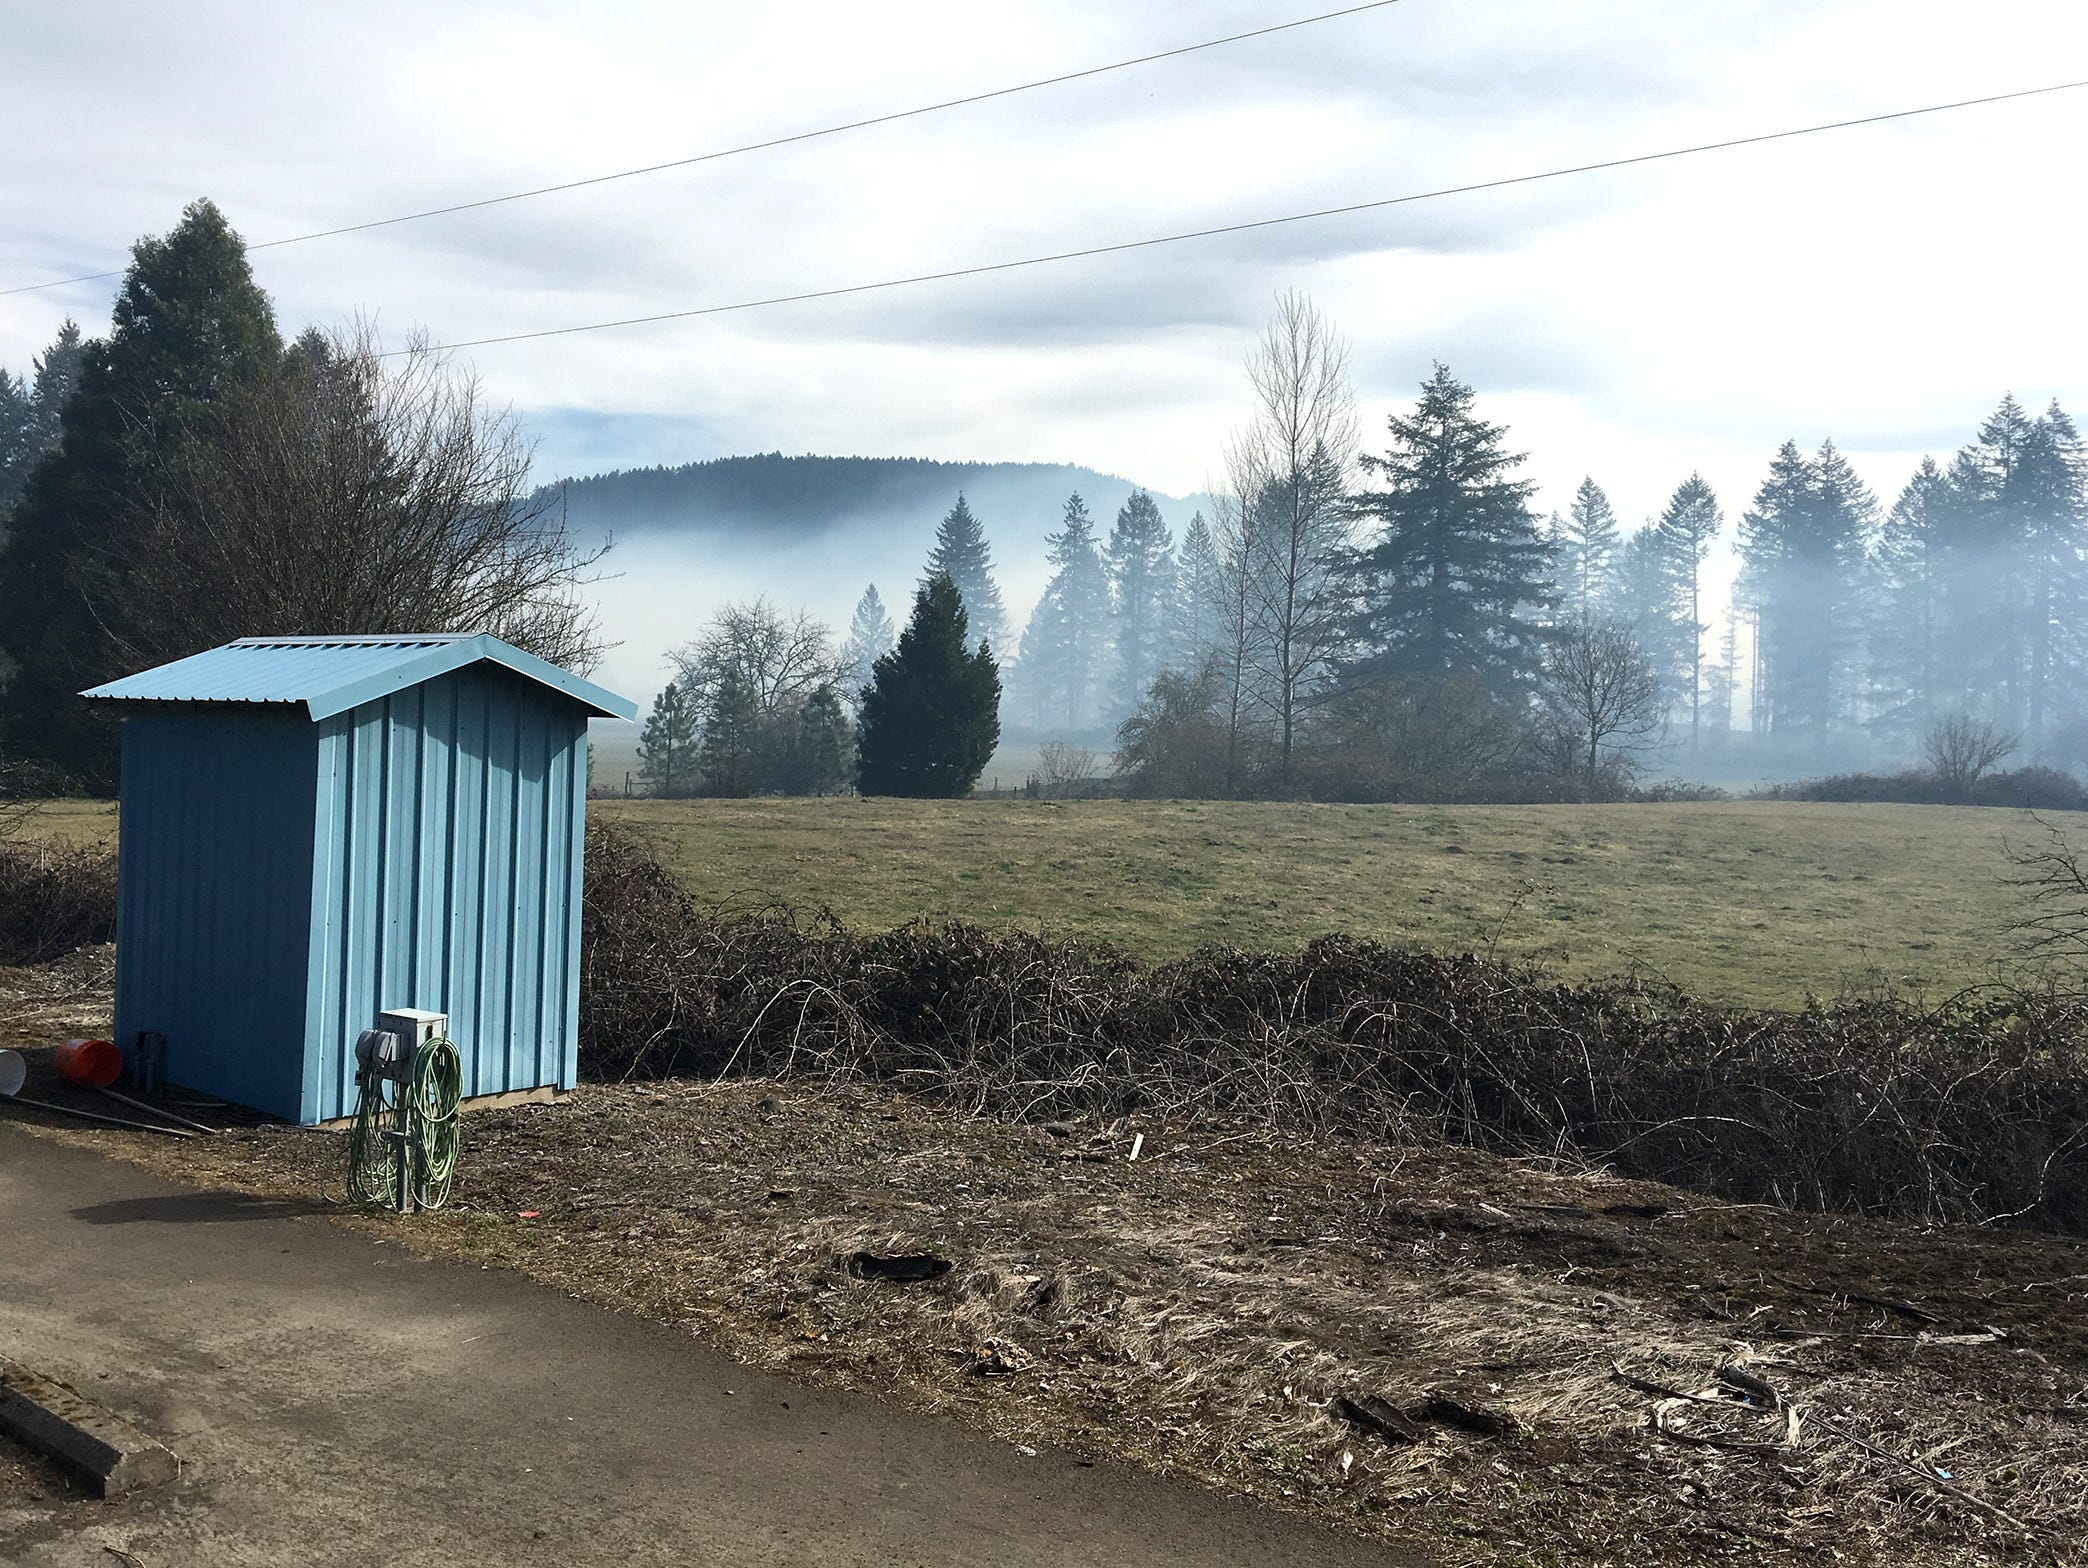 Smoke from a grass fire drifts over the North Santiam River near Lyons. The fire was first reported Tuesday afternoon in the North Santiam State Recreation Area.